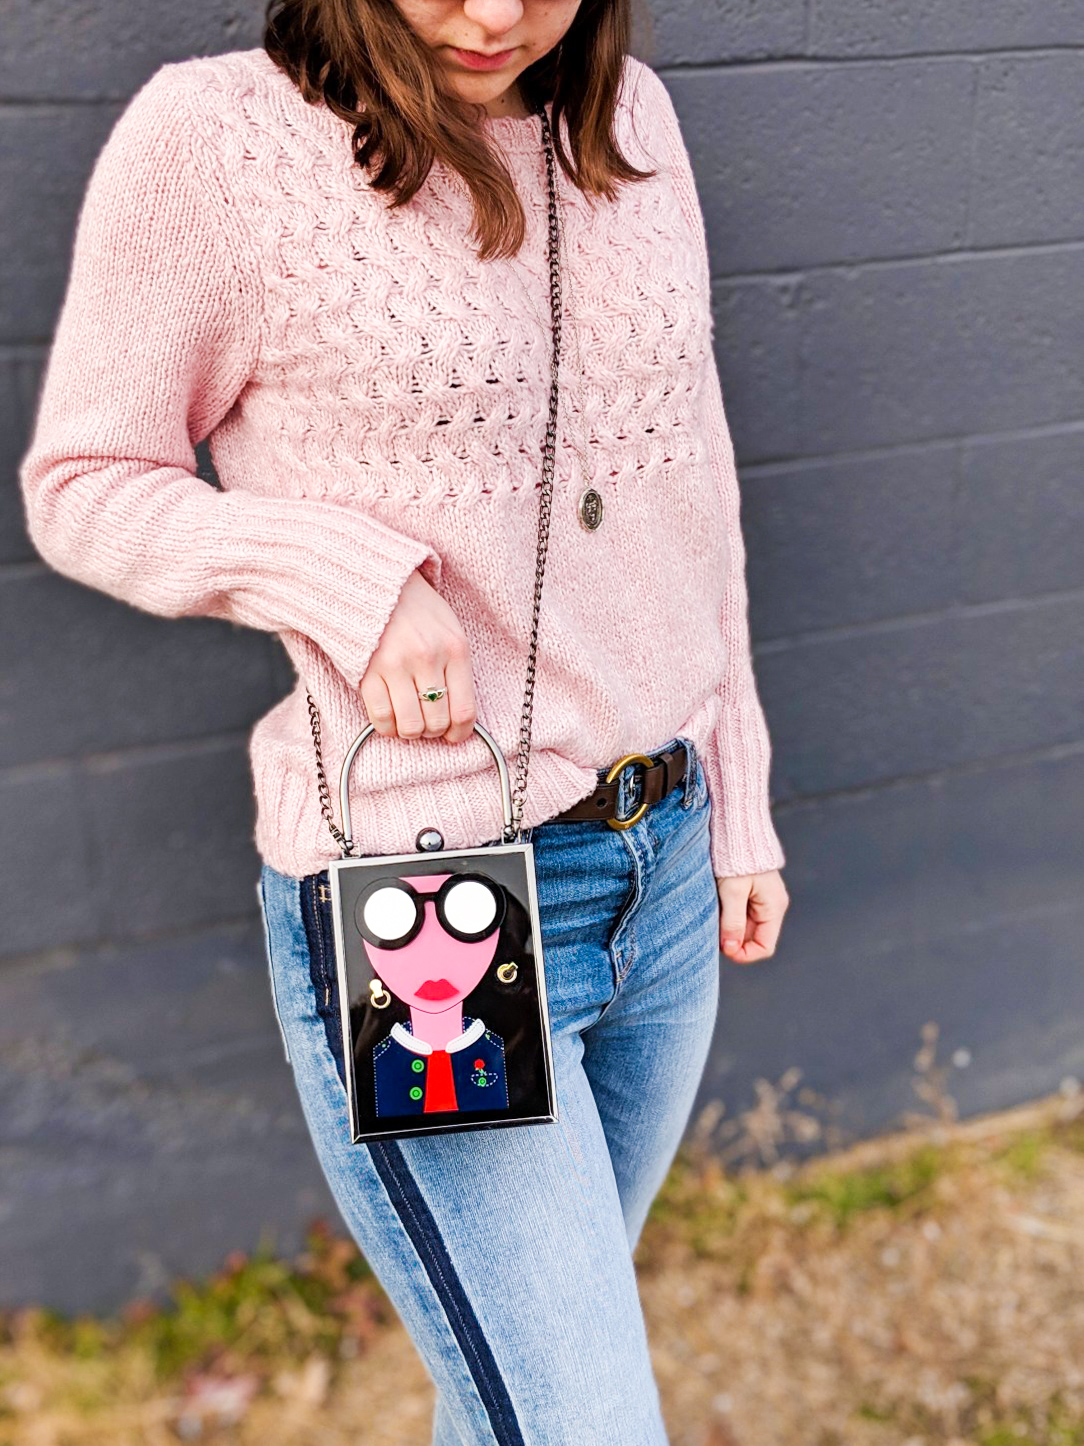 pink sweater, tuxedo stripe jeans, brown belt, art deco purse, street style